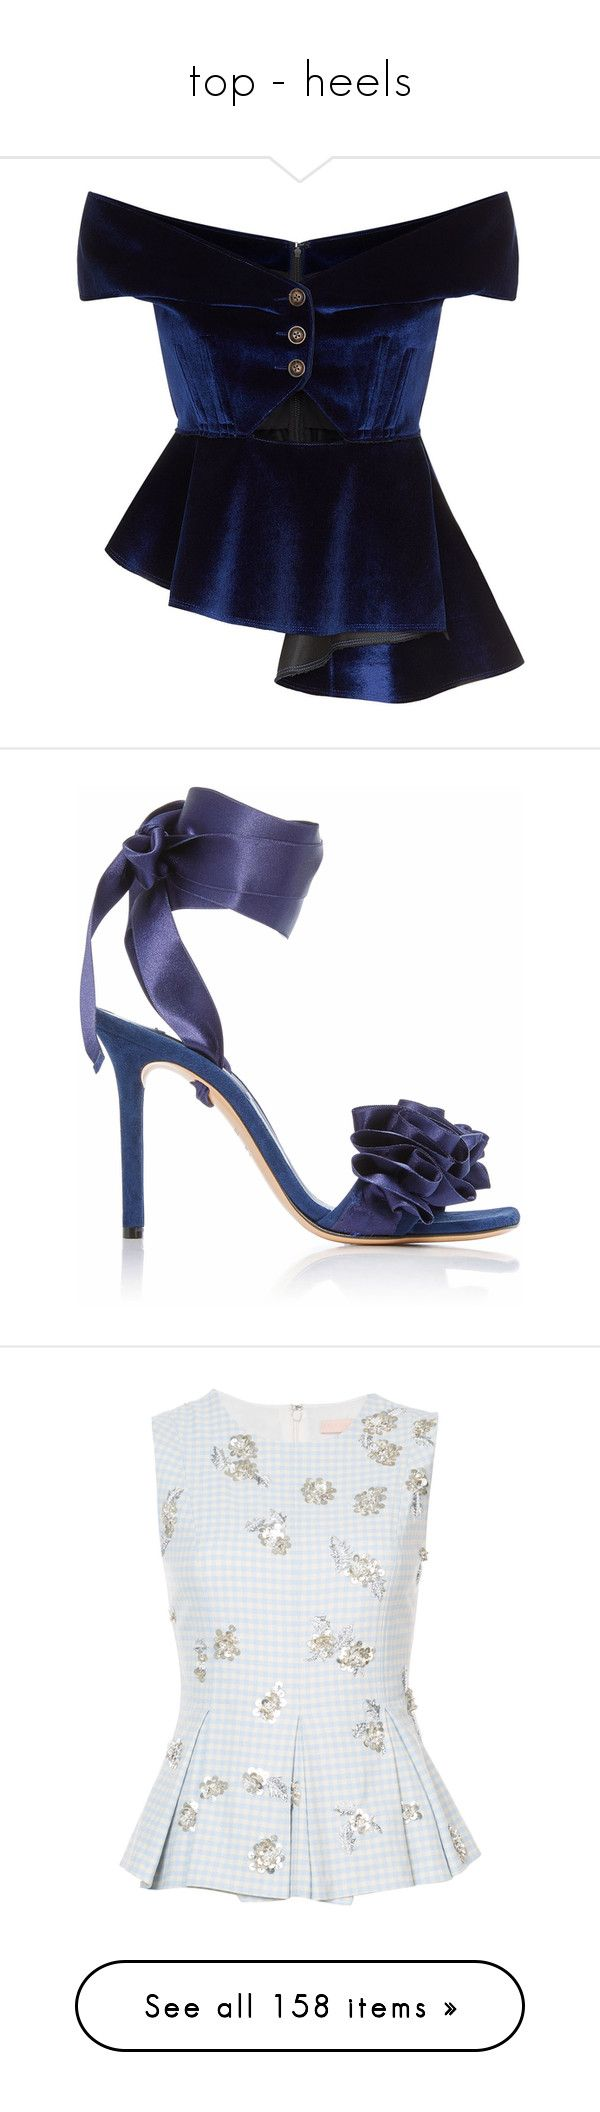 """""""top - heels"""" by saltless ❤ liked on Polyvore featuring shoes, sandals, navy, casadei, navy sandals, navy satin shoes, casadei shoes, navy blue satin shoes, tops and blue"""